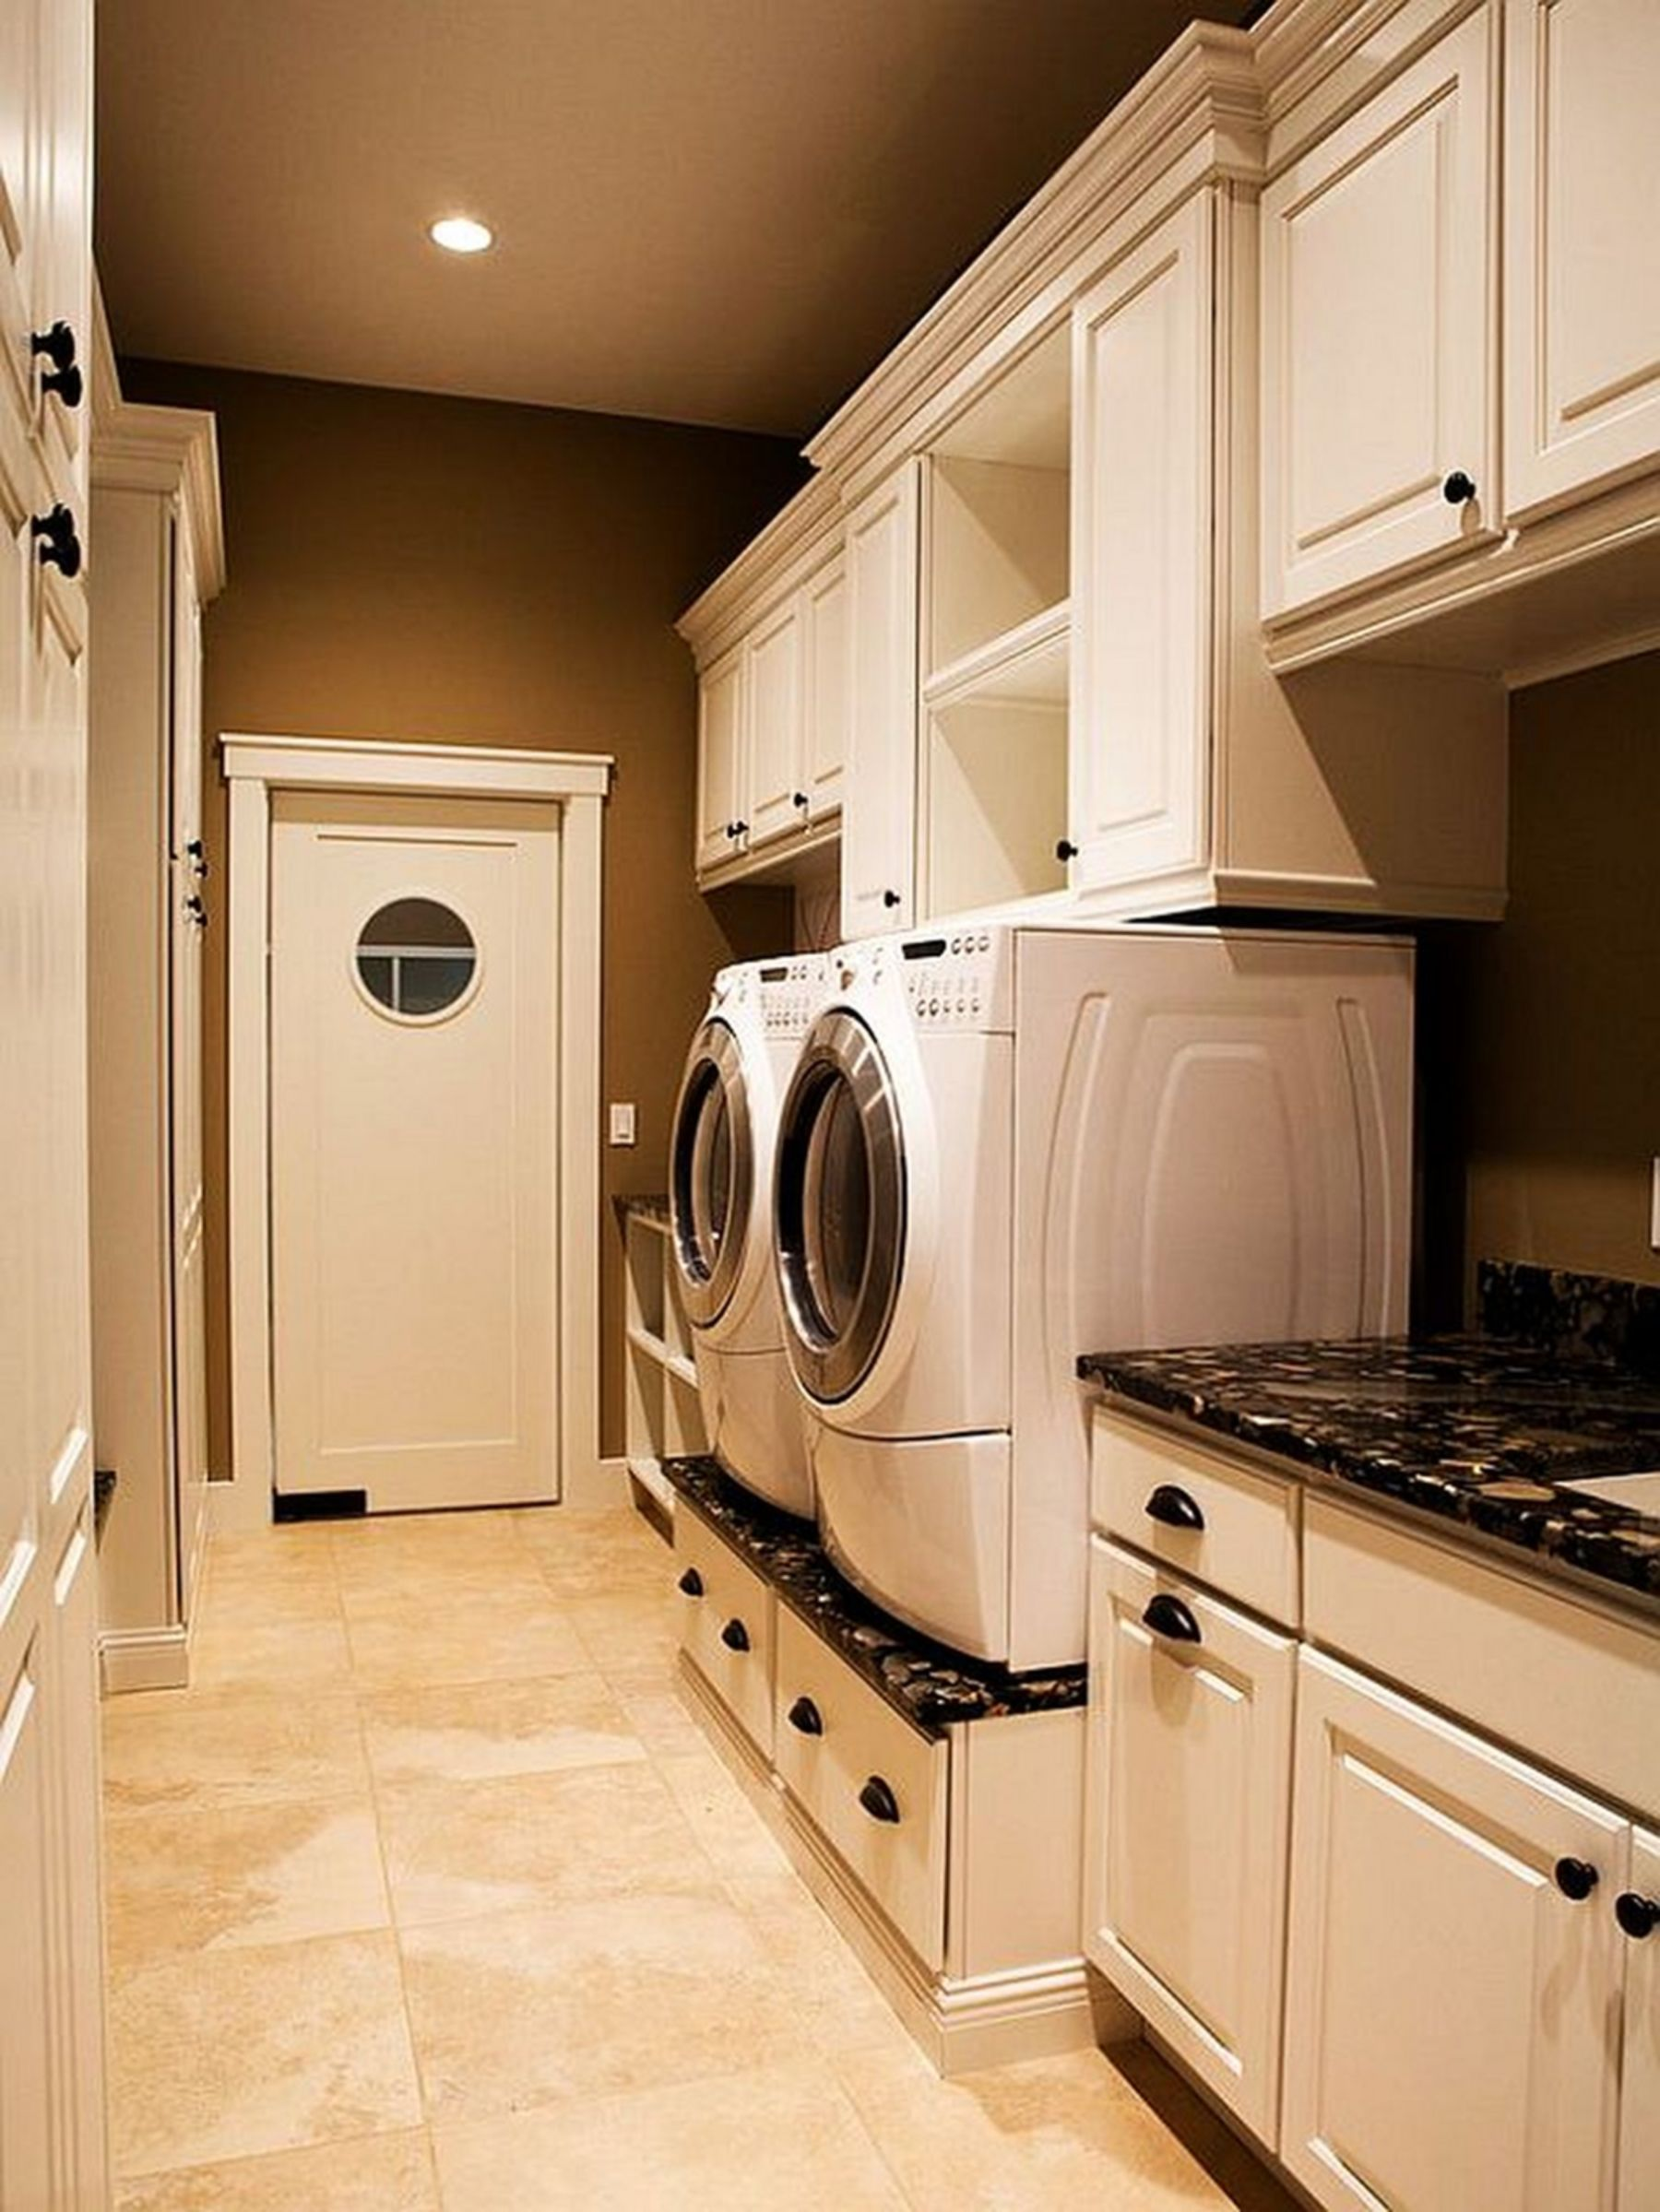 Great decorating ideas for laundry rooms and mudrooms, including furnishings, wallpaper ideas, decor, and more. 12 Stunning Minimalist Laundry Room Design Ideas To ...